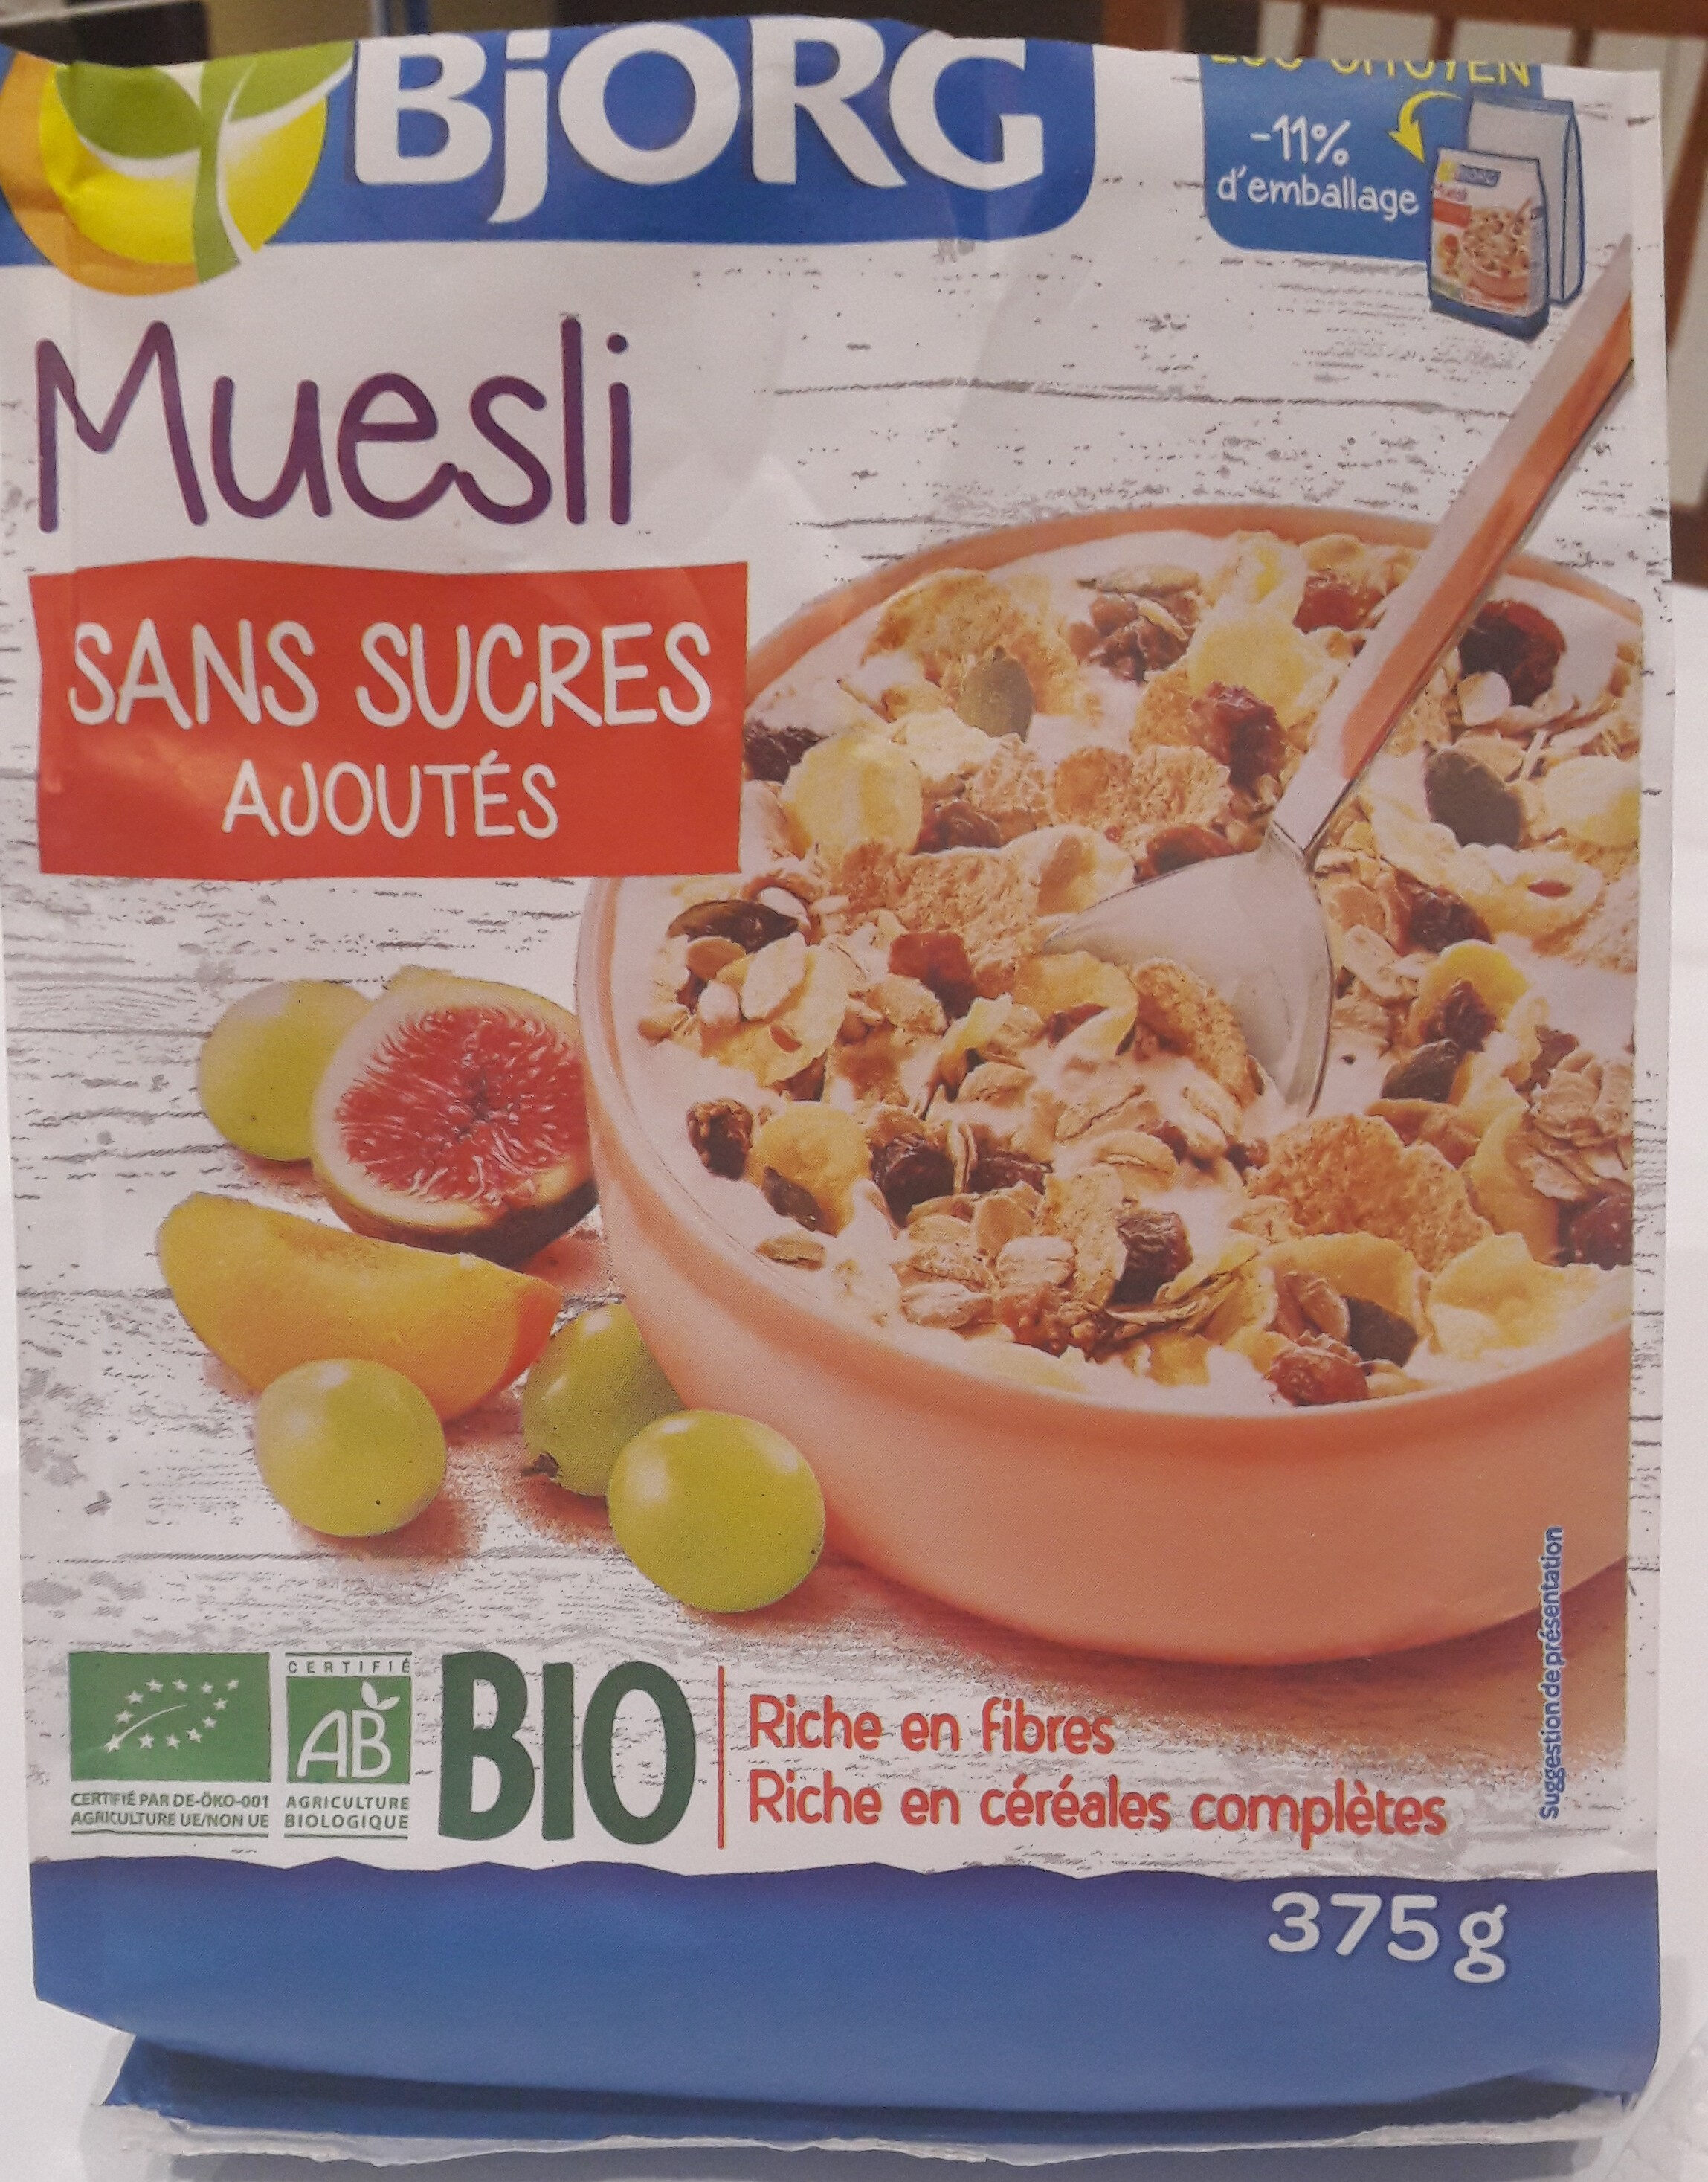 Muesli Raisin, Figue, Abricot - Product - fr